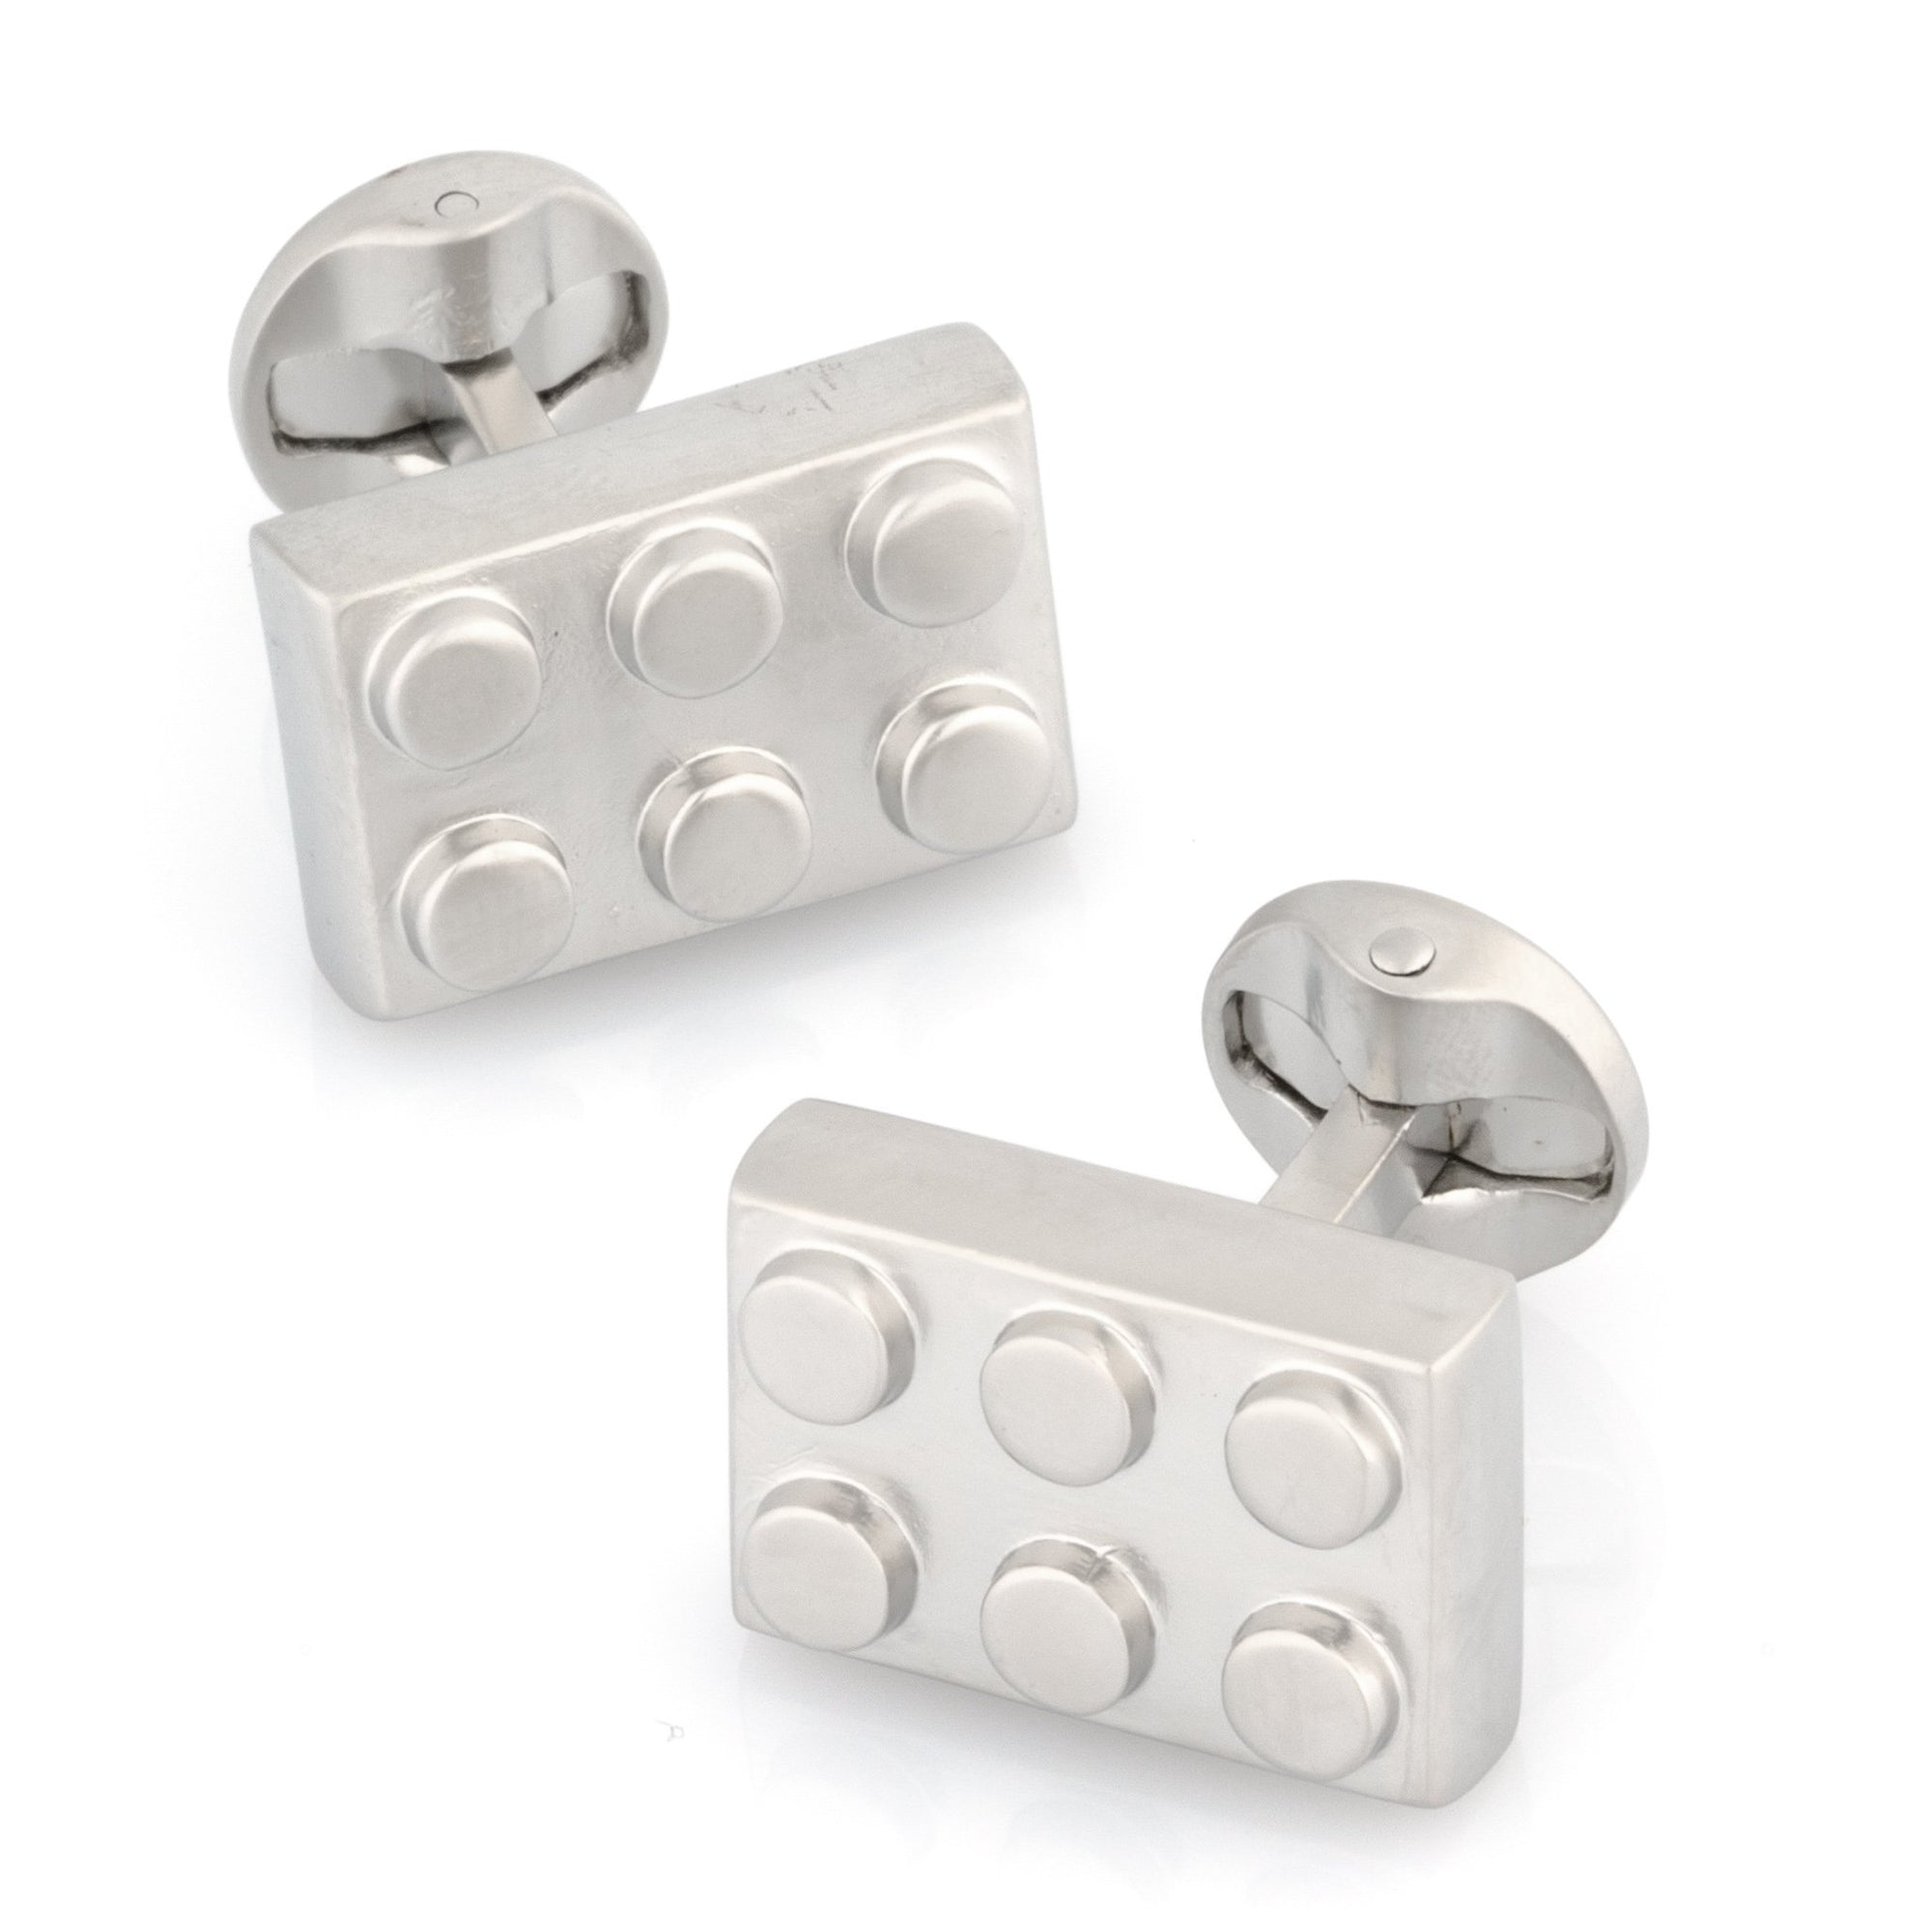 Silver Building Block Cufflinks Novelty Cufflinks Clinks Australia